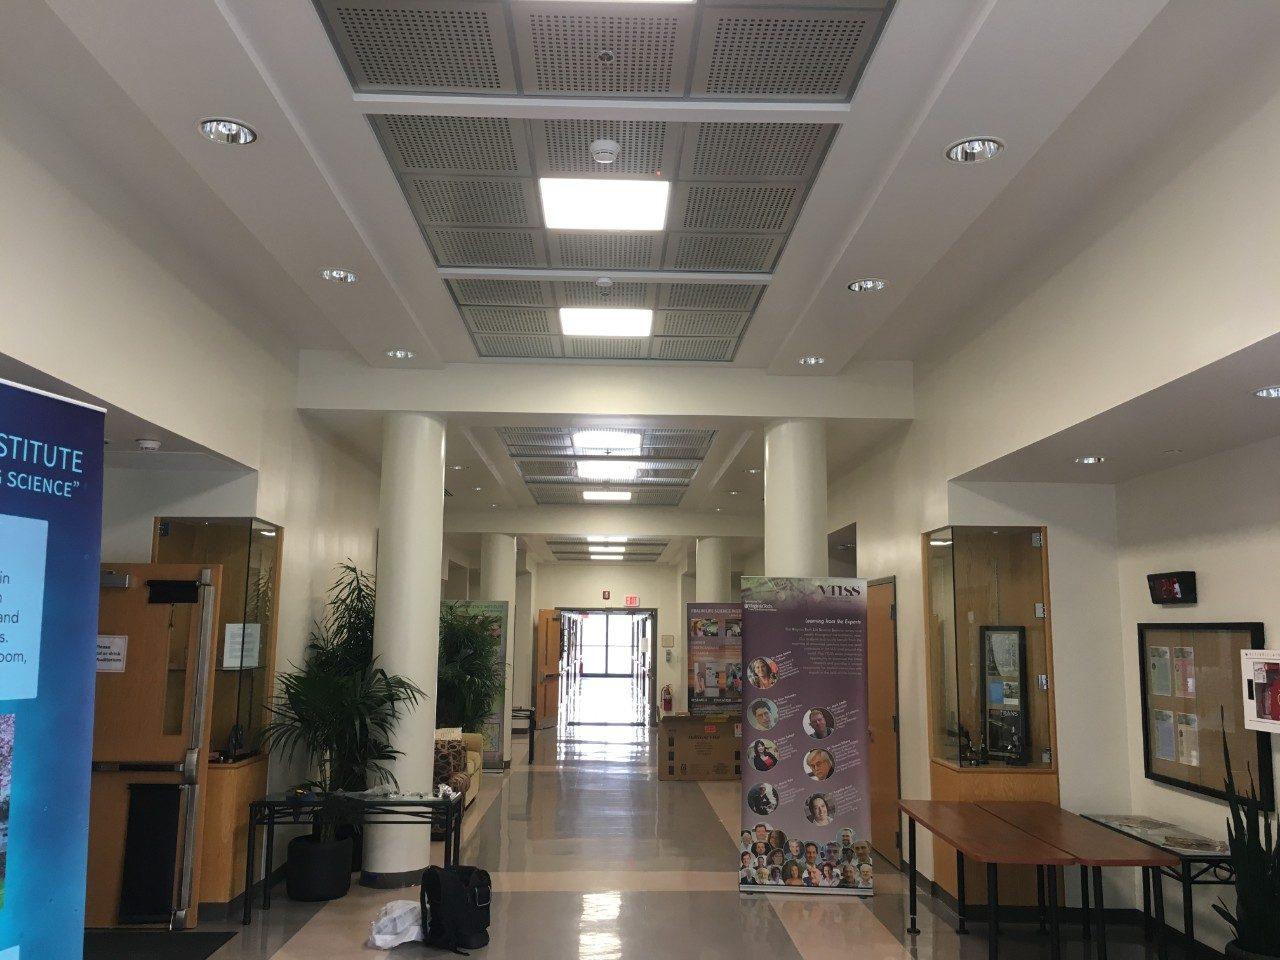 Lighting Upgrades in Fralin Life Sciences Institute